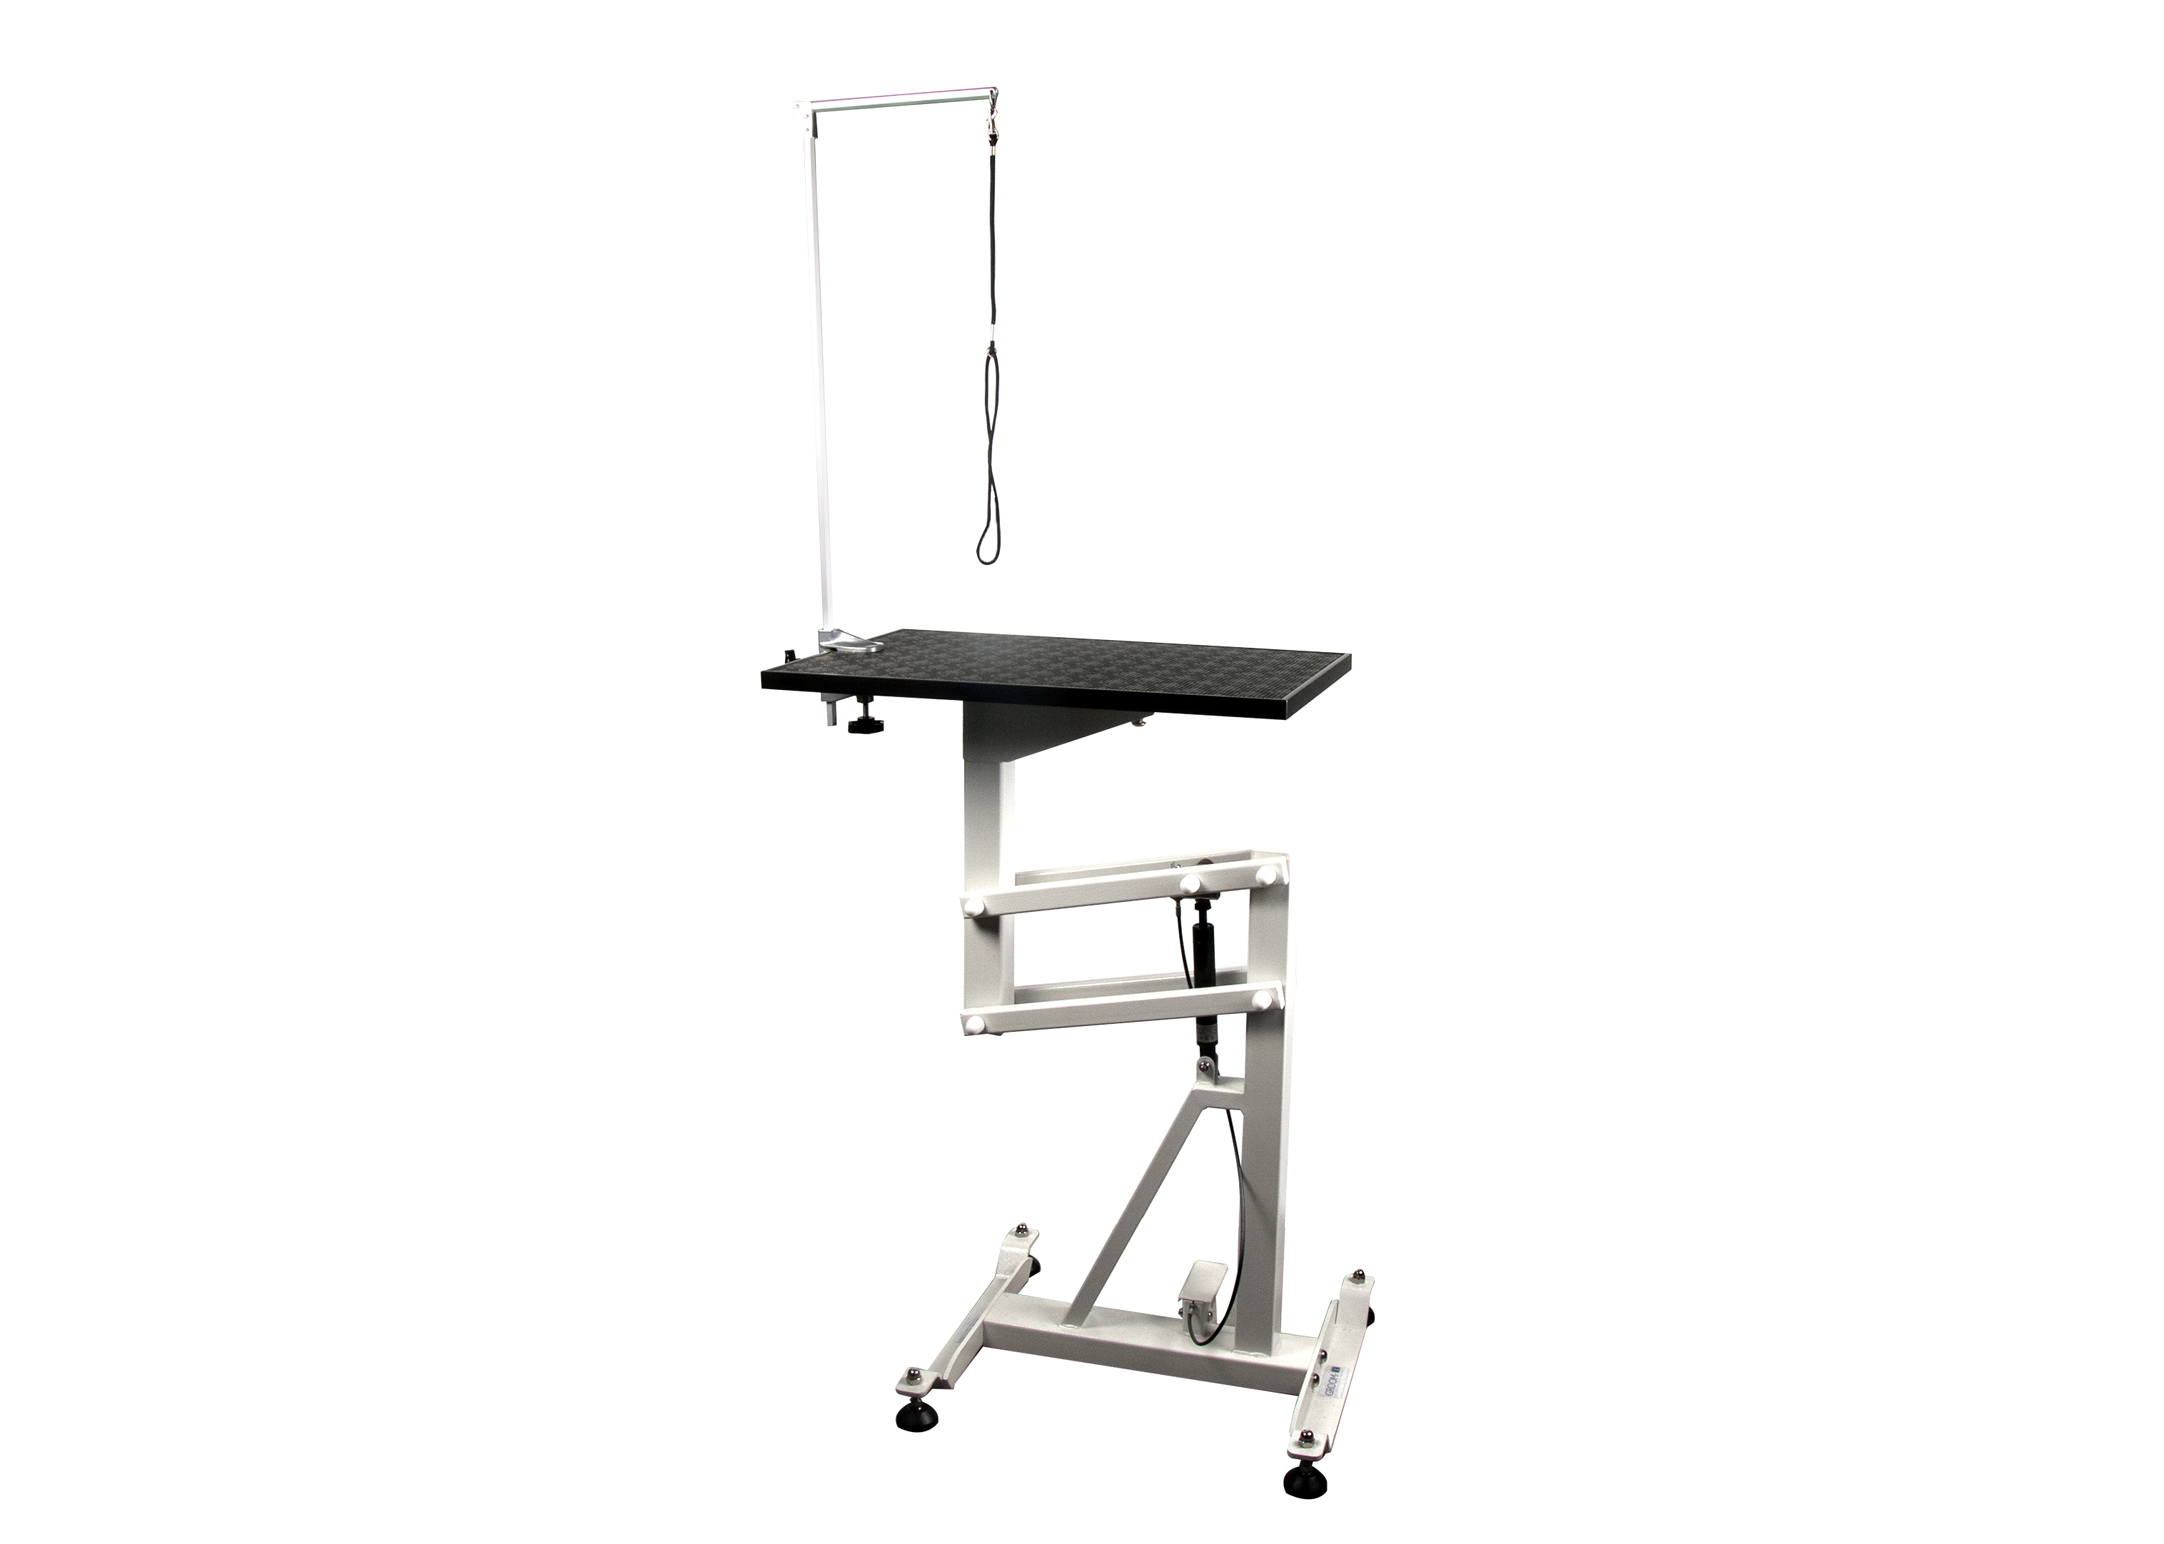 Groom-X Compact Air Lift Grooming Table Rectangular Royal Lotus 60x40cmx80-120cmh with control post